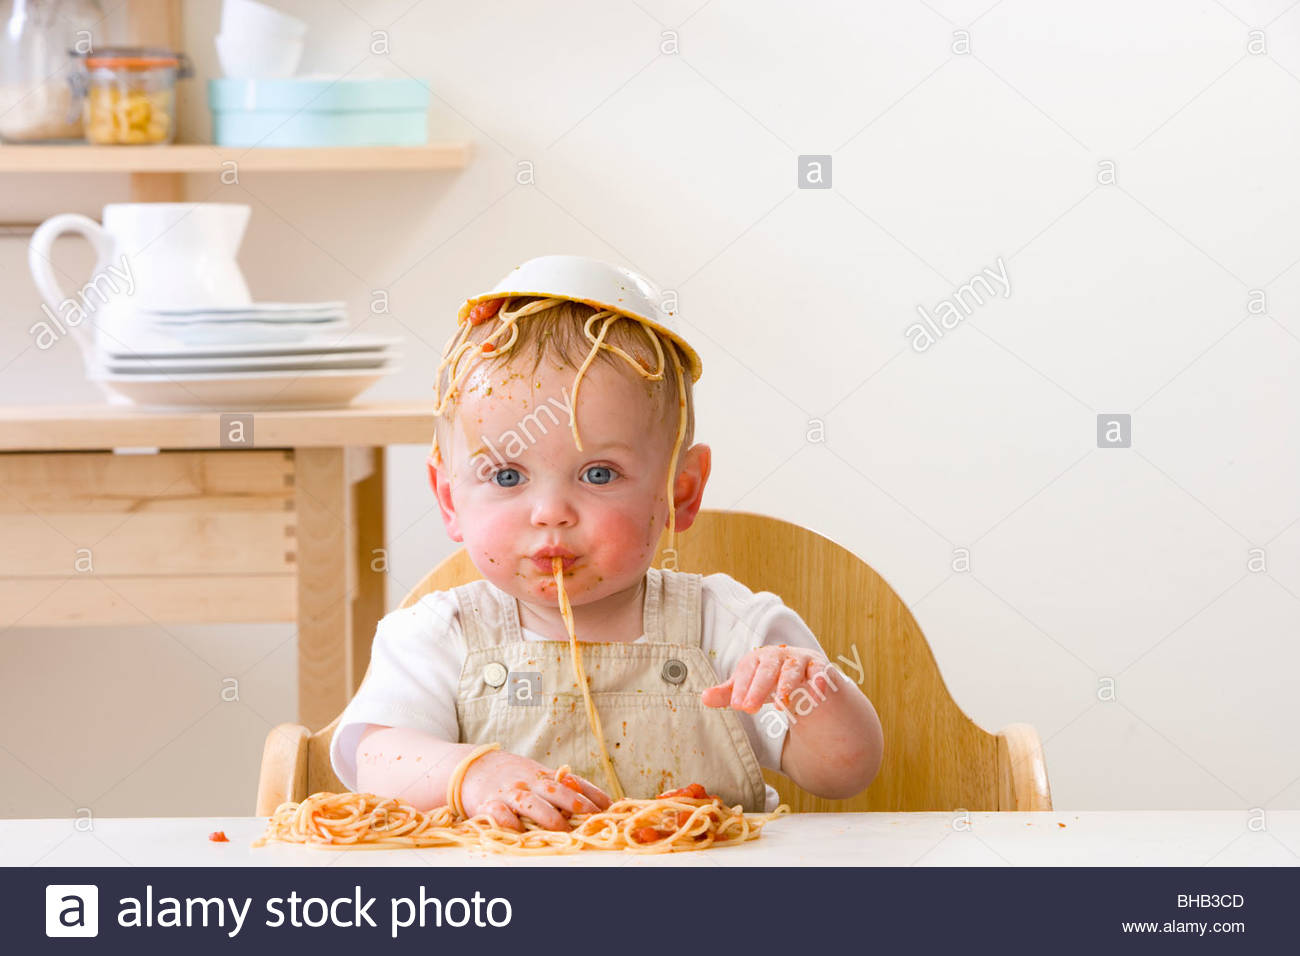 Messy baby boy in high chair with bowl of spaghetti on head - Stock Image